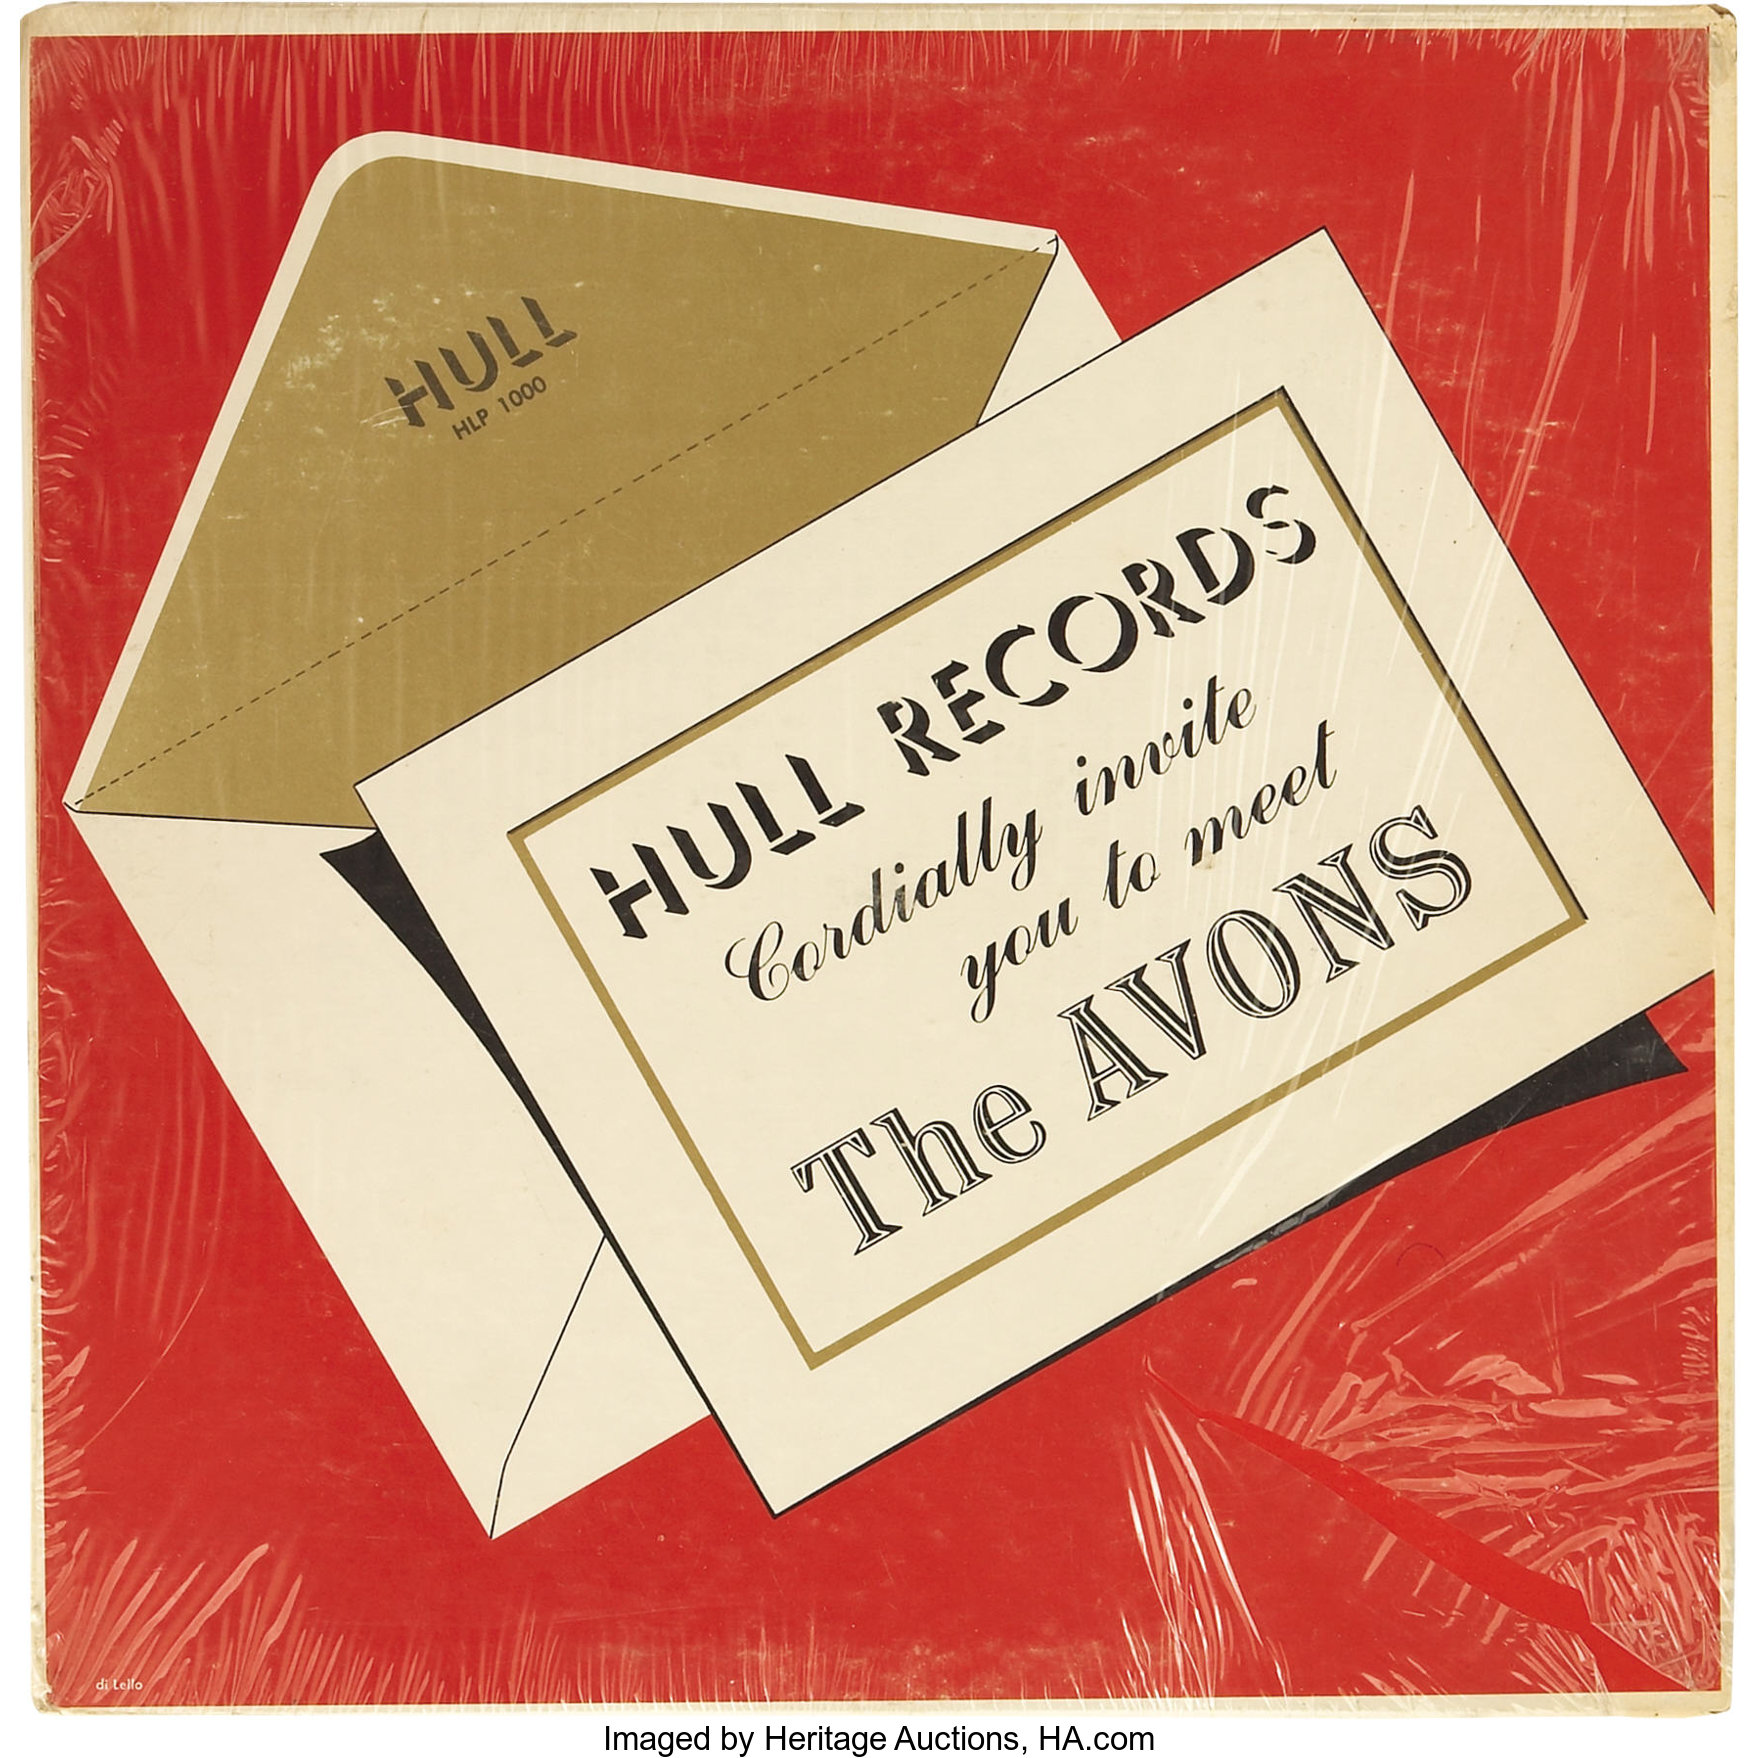 Avons Hull Records Cordially Invite You To Meet The Avons Lp Hull Lot 30174 Heritage Auctions